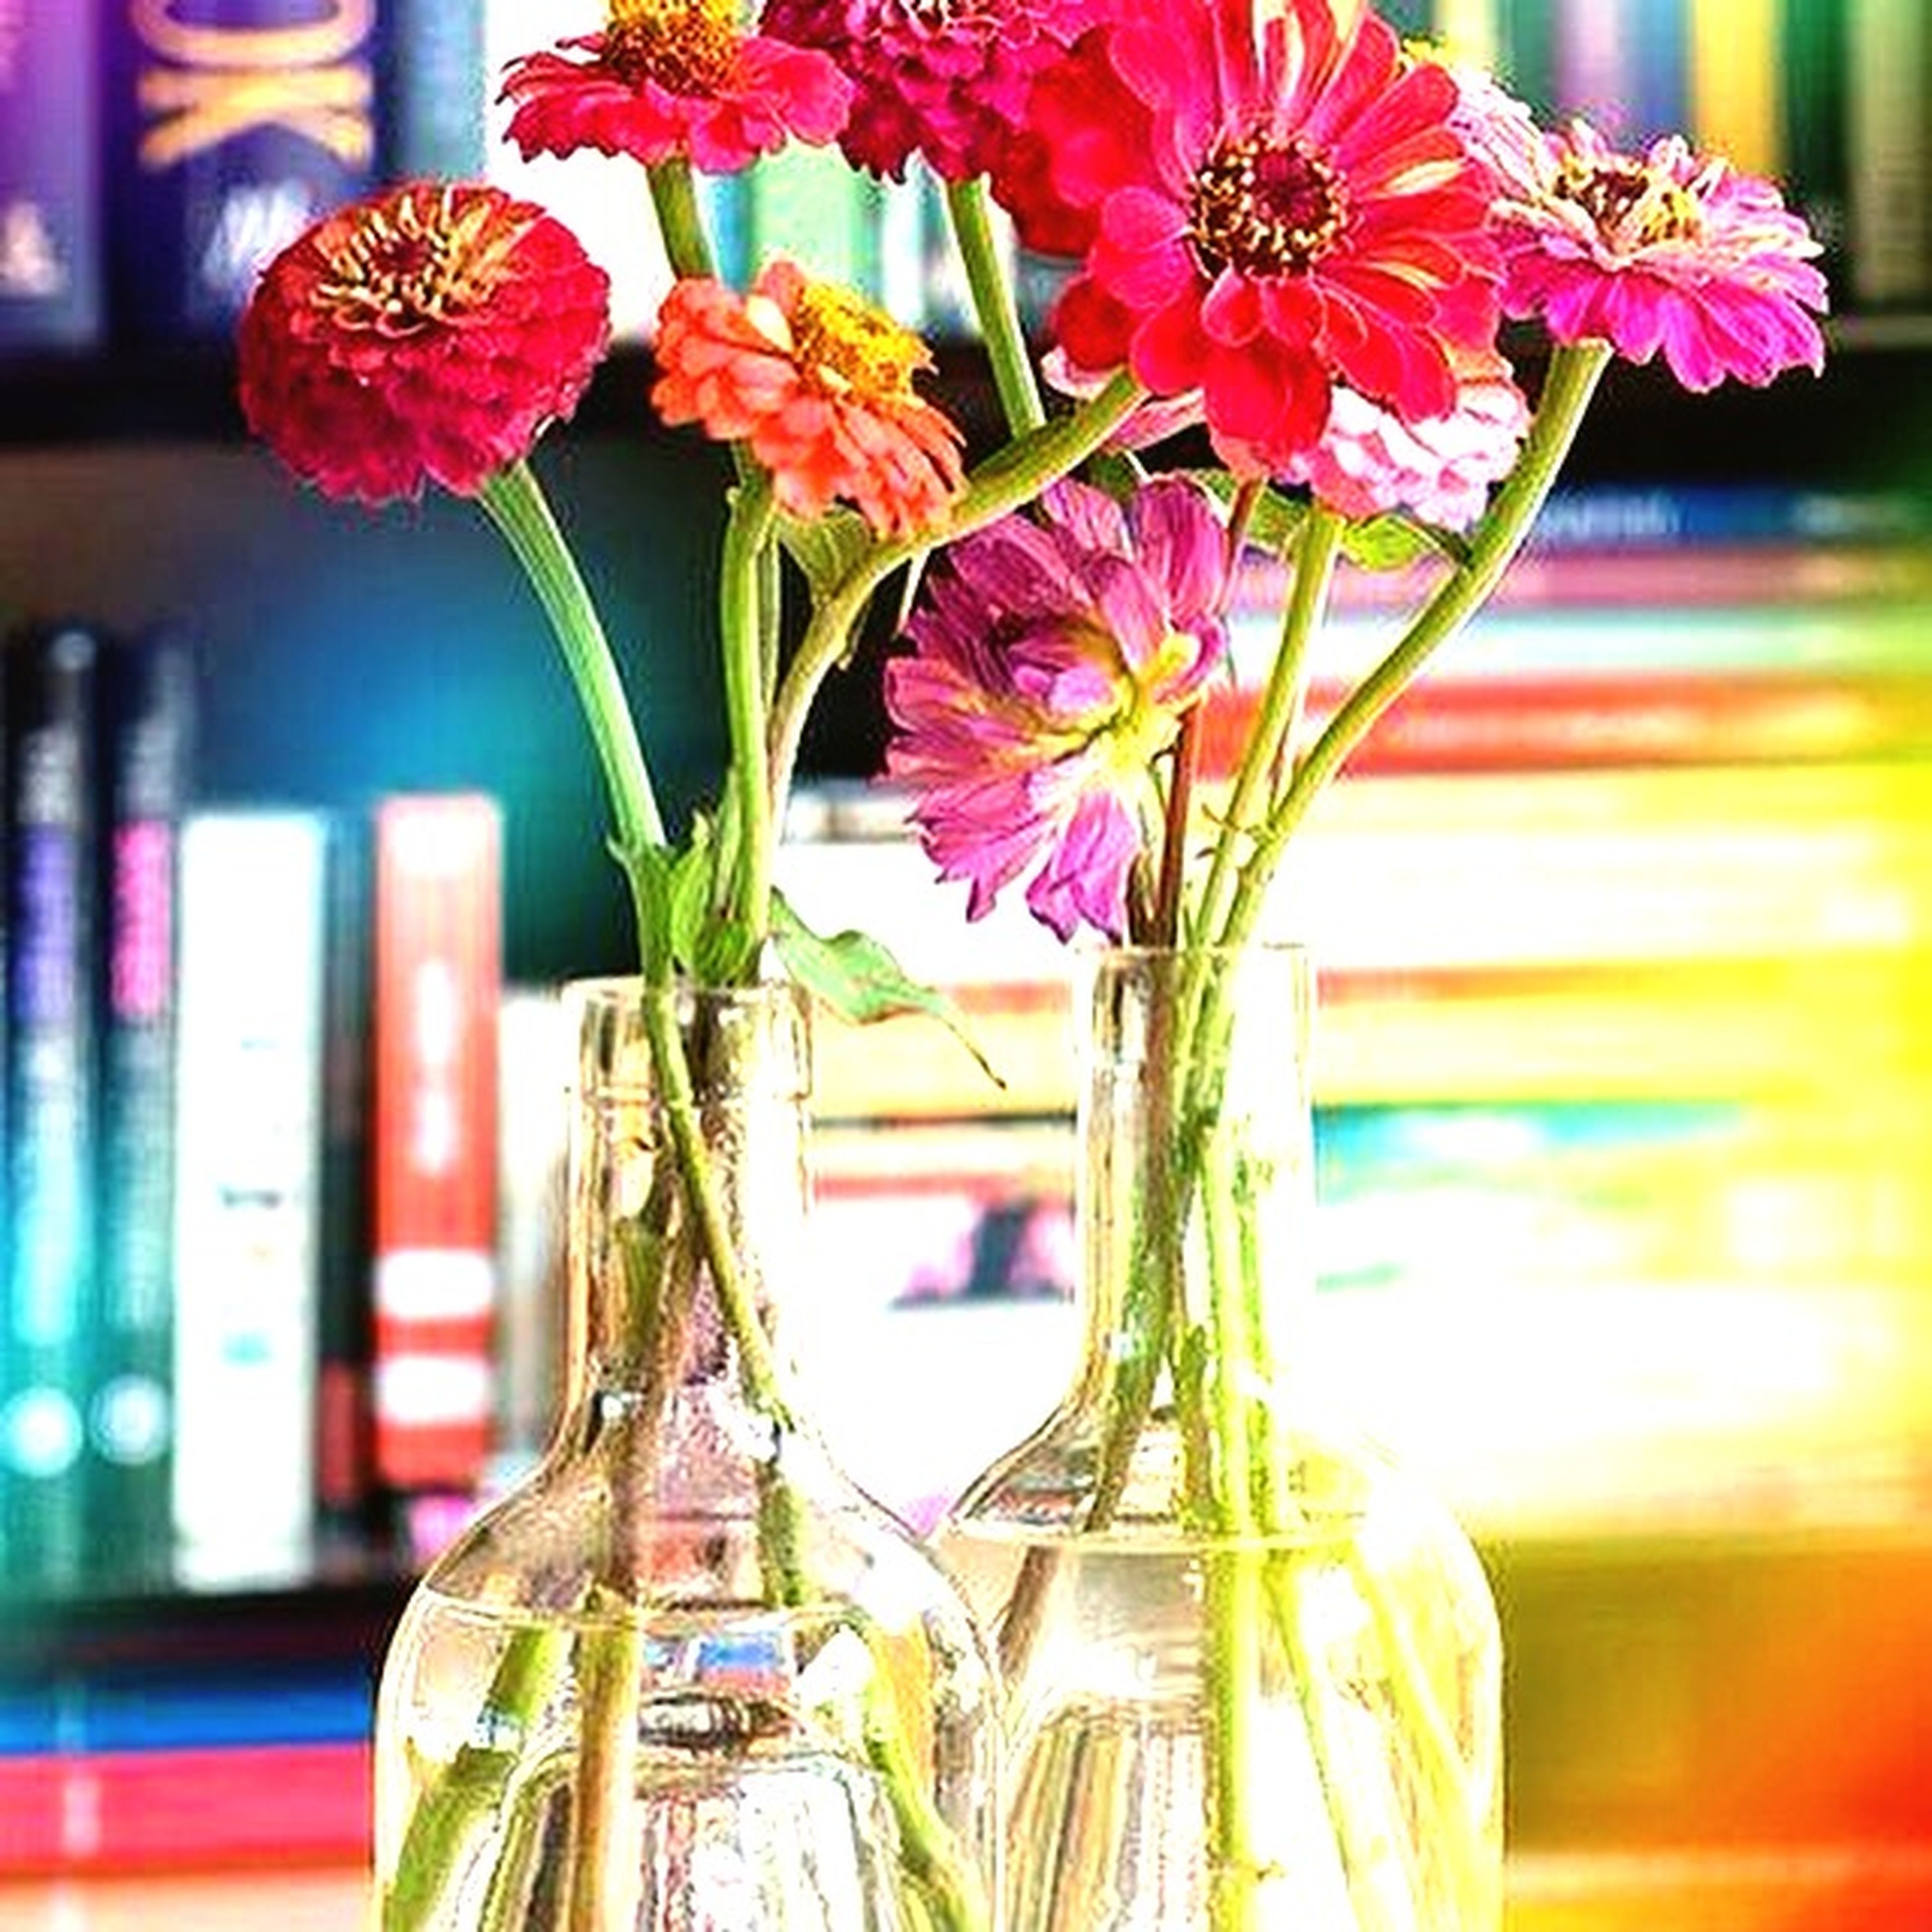 flower, fragility, focus on foreground, freshness, vase, petal, close-up, growth, potted plant, plant, decoration, pink color, built structure, stem, flower head, indoors, glass - material, nature, architecture, building exterior